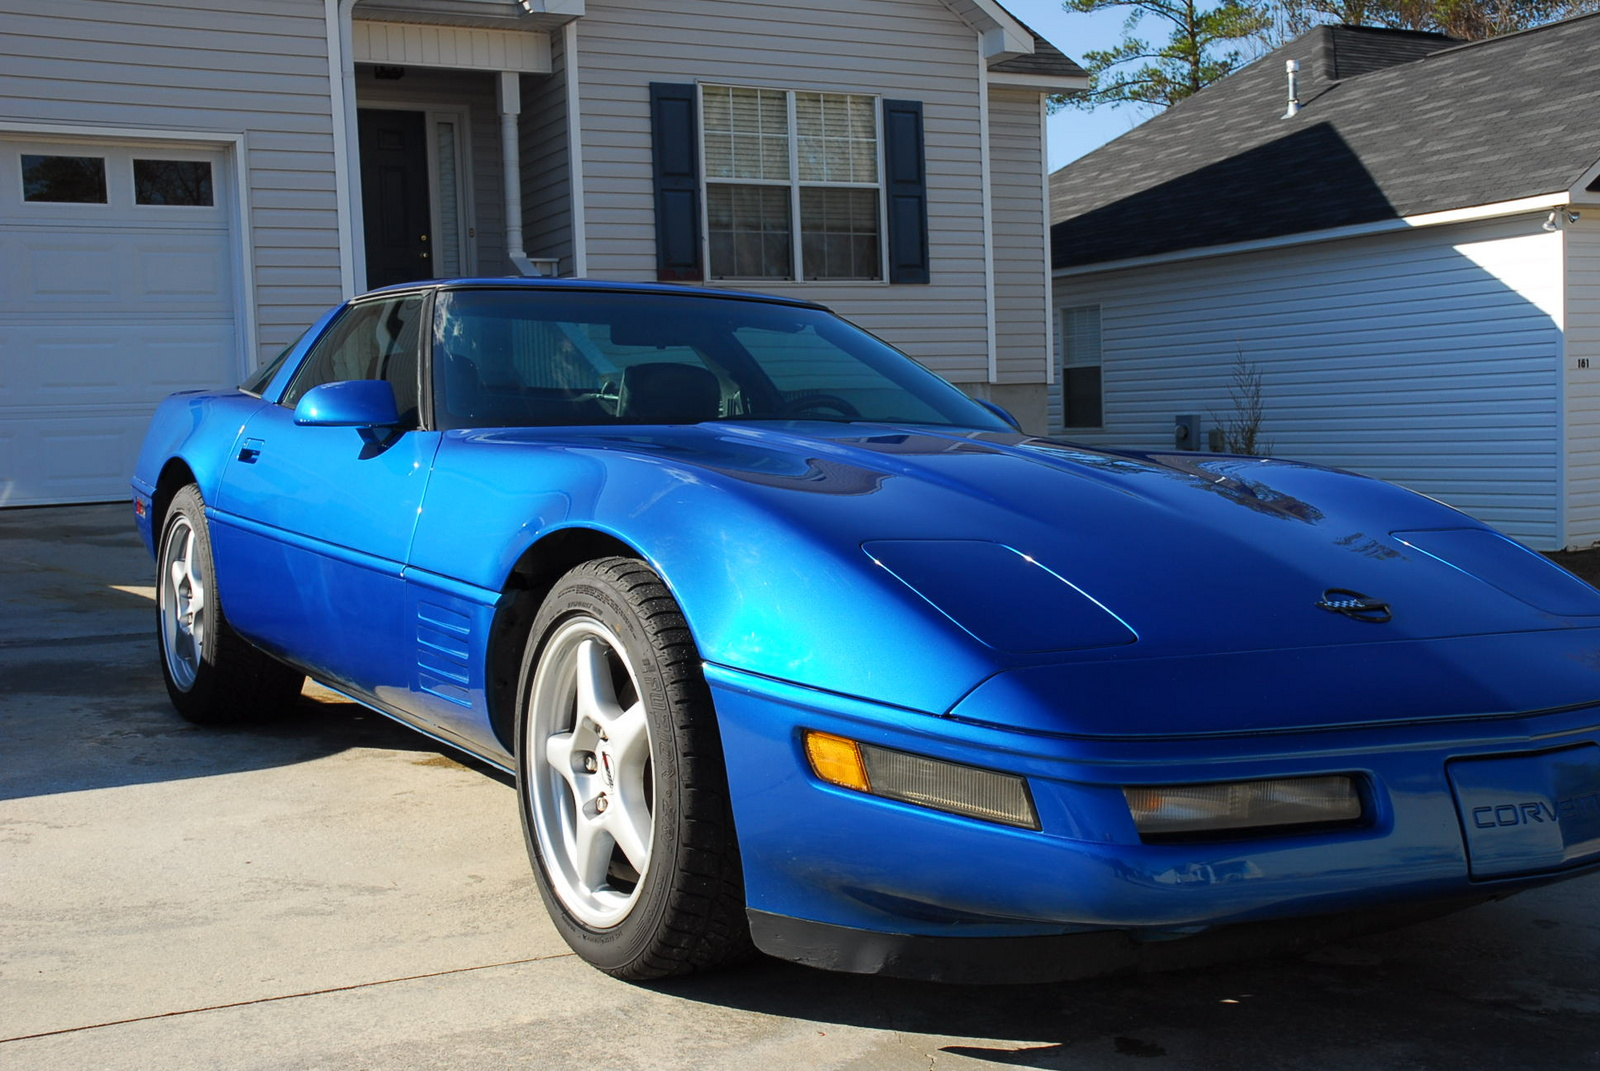 1991 Chevrolet Corvette Base, Picture of 1991 Chevrolet Corvette 2 Dr STD Hatchback, exterior